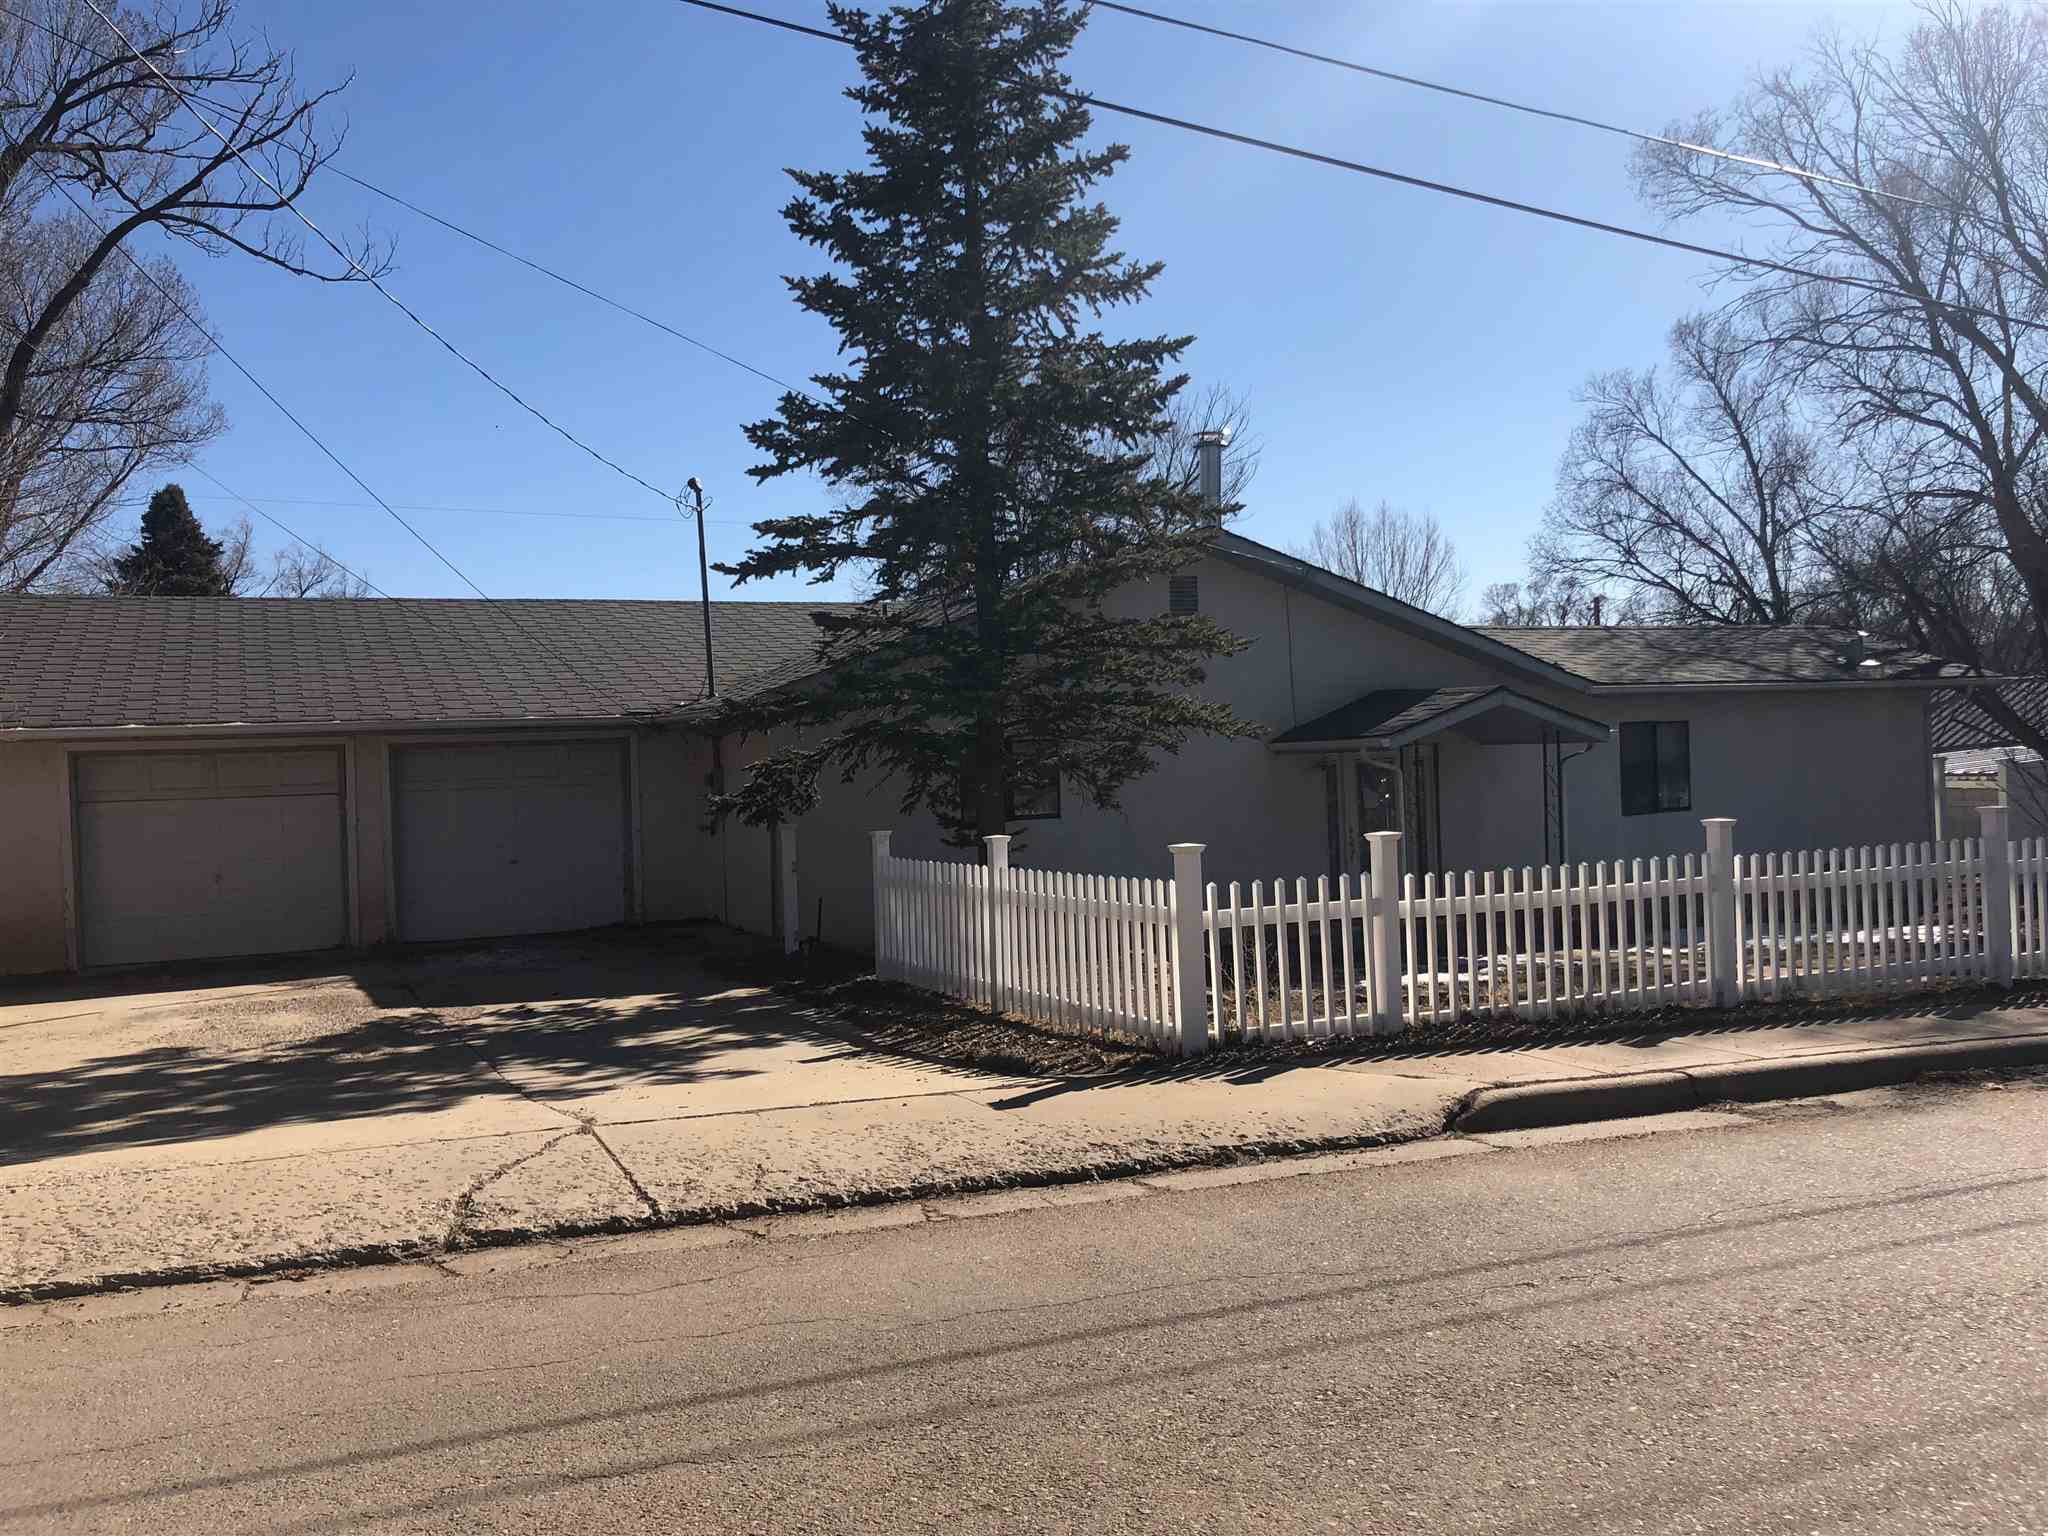 This large 4 bedroom, 2 bath house with a 2 car garage attached could be yours today. With some TLC this place offers great potential with a central location. On 1 acre of property this home offers a large lot to make your own. Fenced and has storage buildings in place.